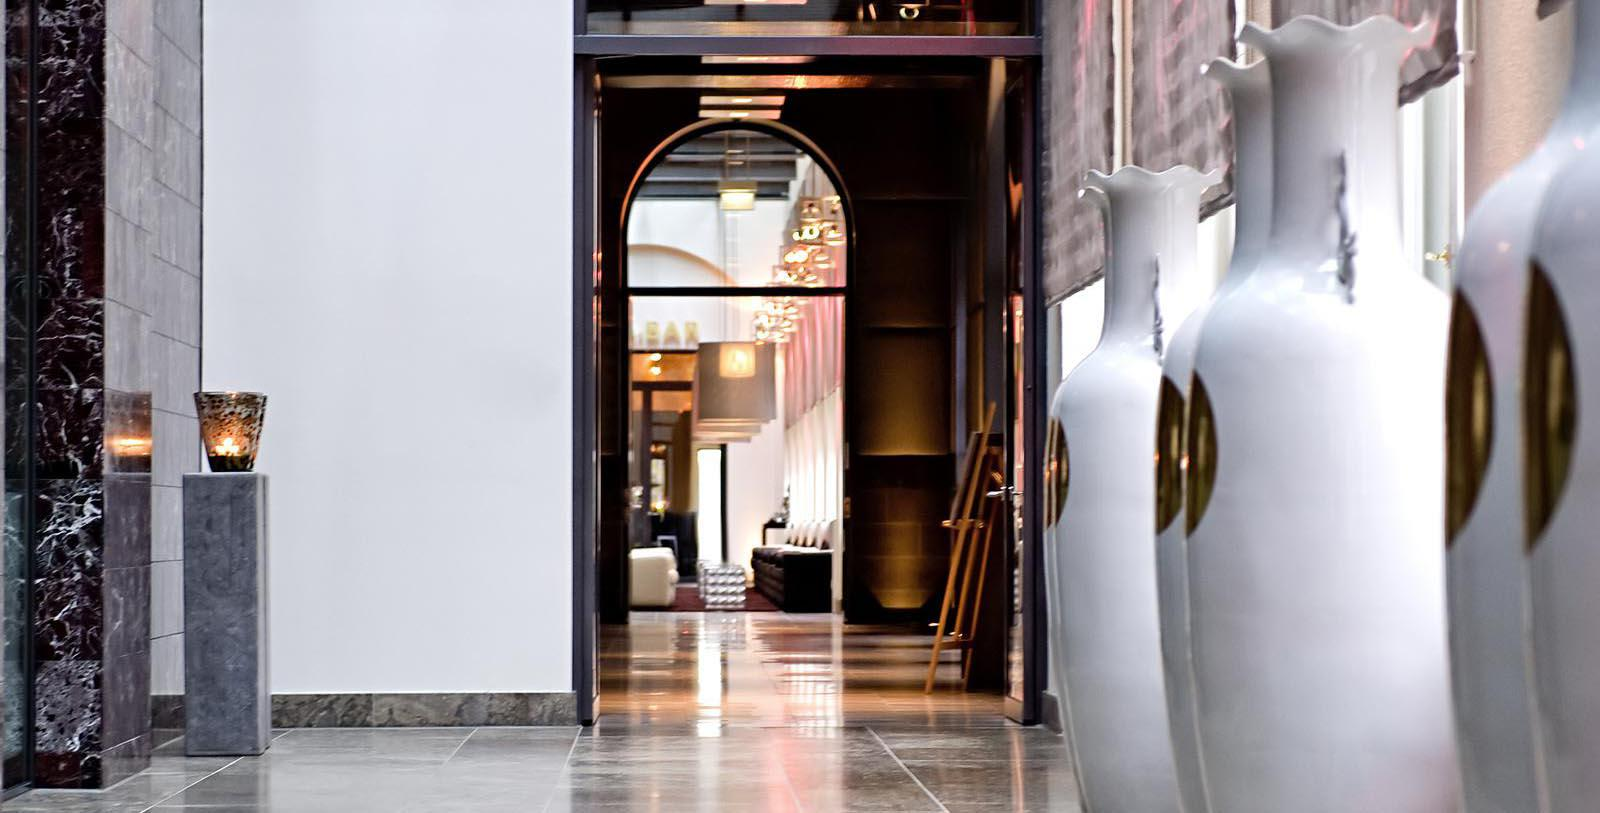 Image of Hallway at Sofitel Munich Bayerpost, 1896, Member of Historic Hotels Worldwide, in Munich, Germany, Discover